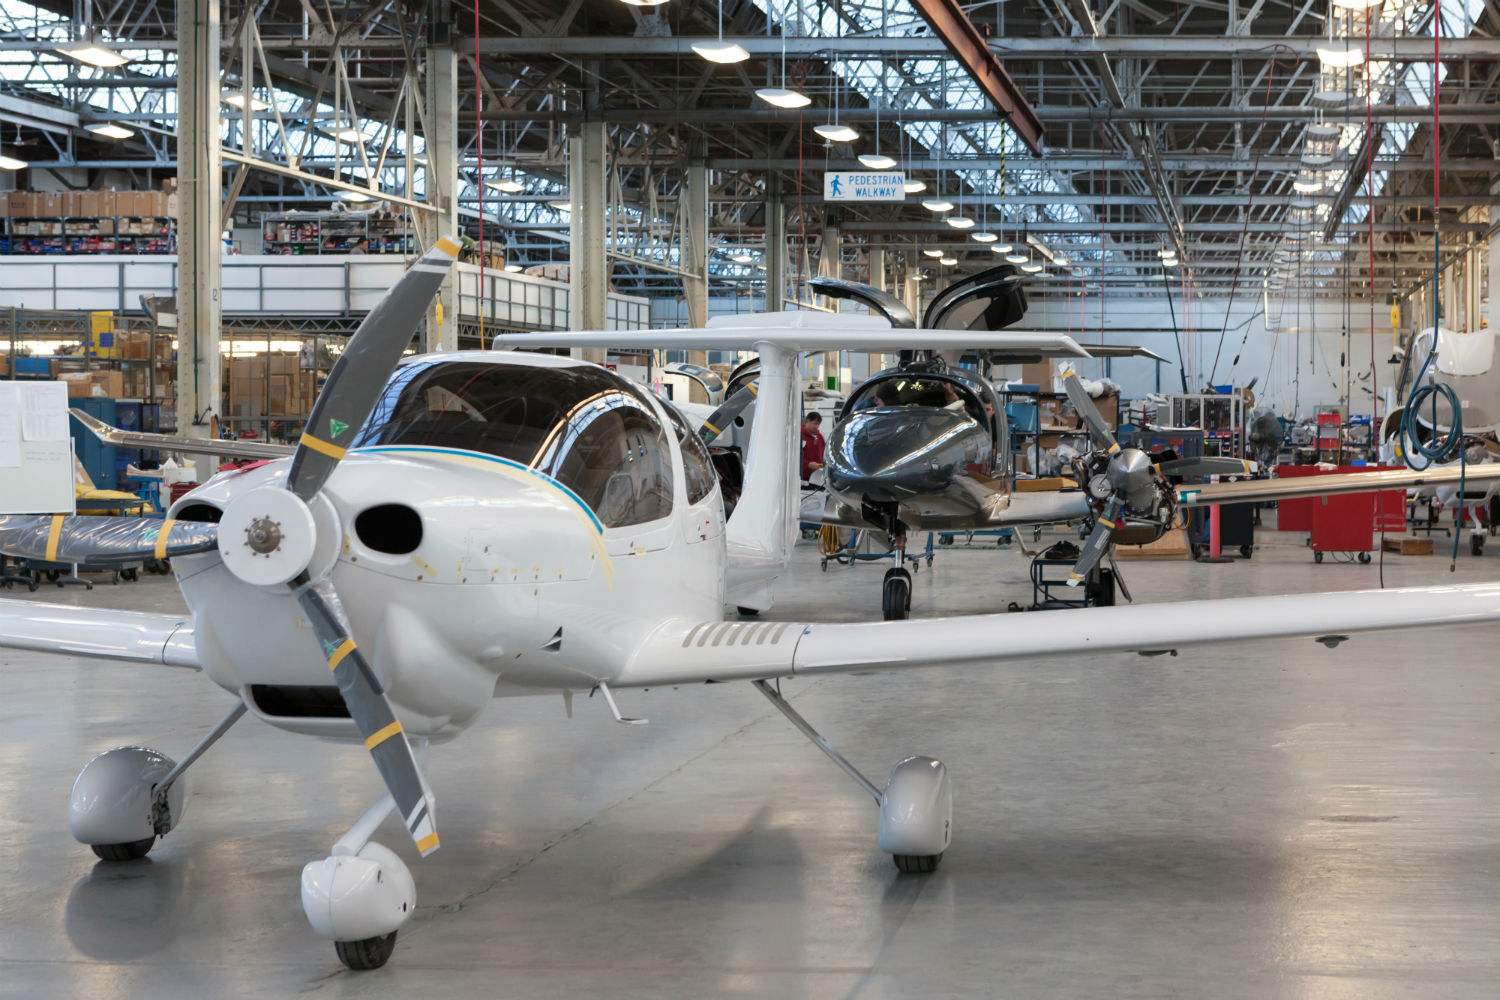 A Diamond DA40 (foreground) and DA62 rest on the production line in London, Ont.